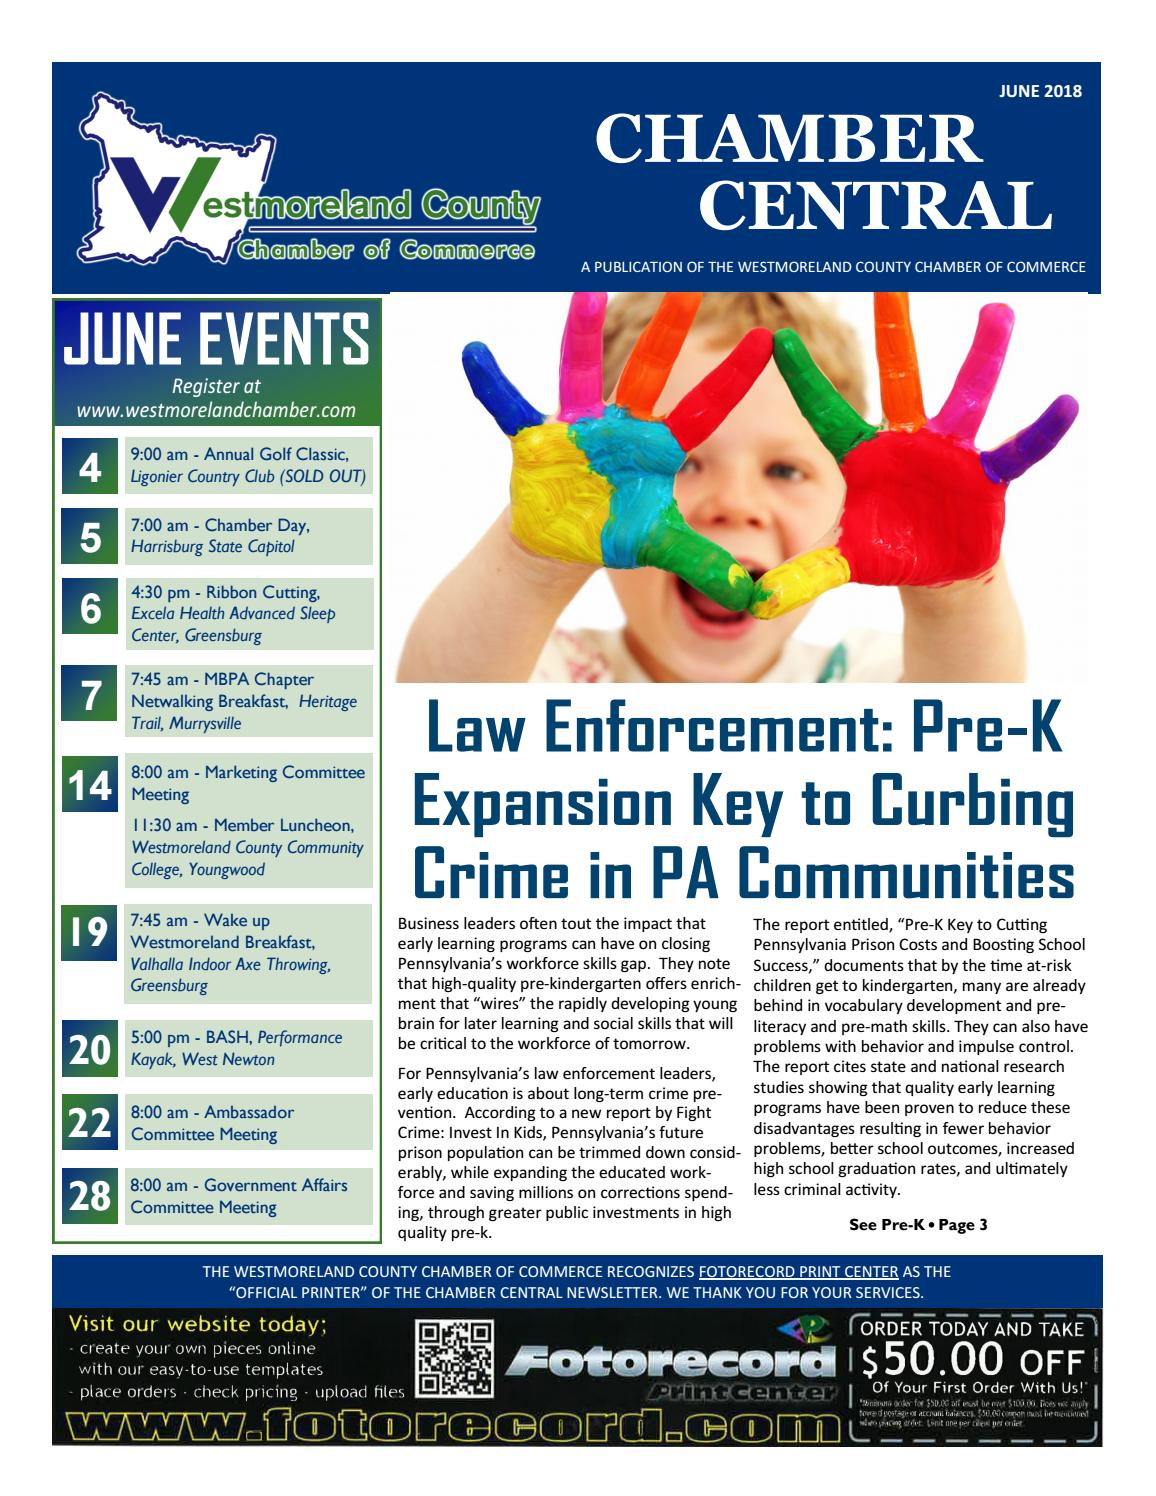 Chamber Central June 2018 by Westmoreland County Chamber of Commerce